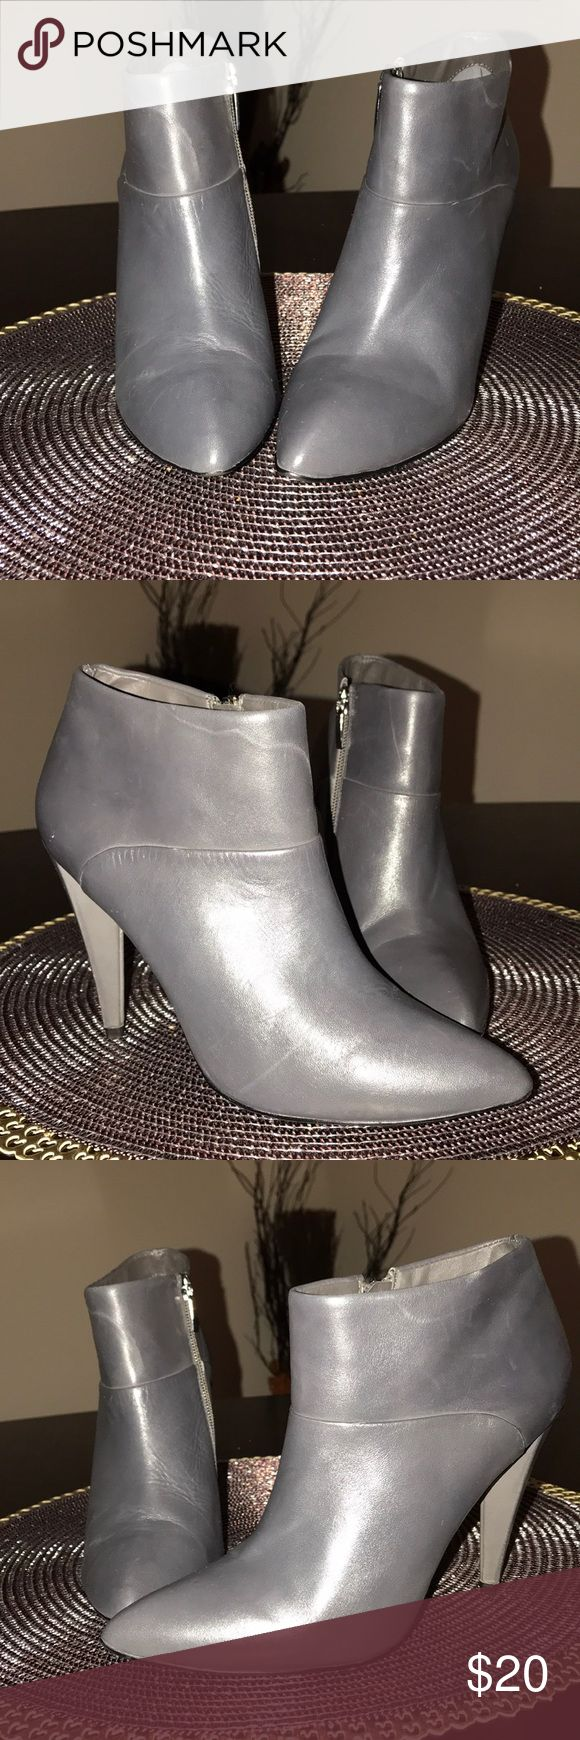 Colin Stuart Grey Bootie Colin Stuart Grey Heeled Bootie, Size 6.5, Good Condition Colin Stuart Shoes Heeled Boots